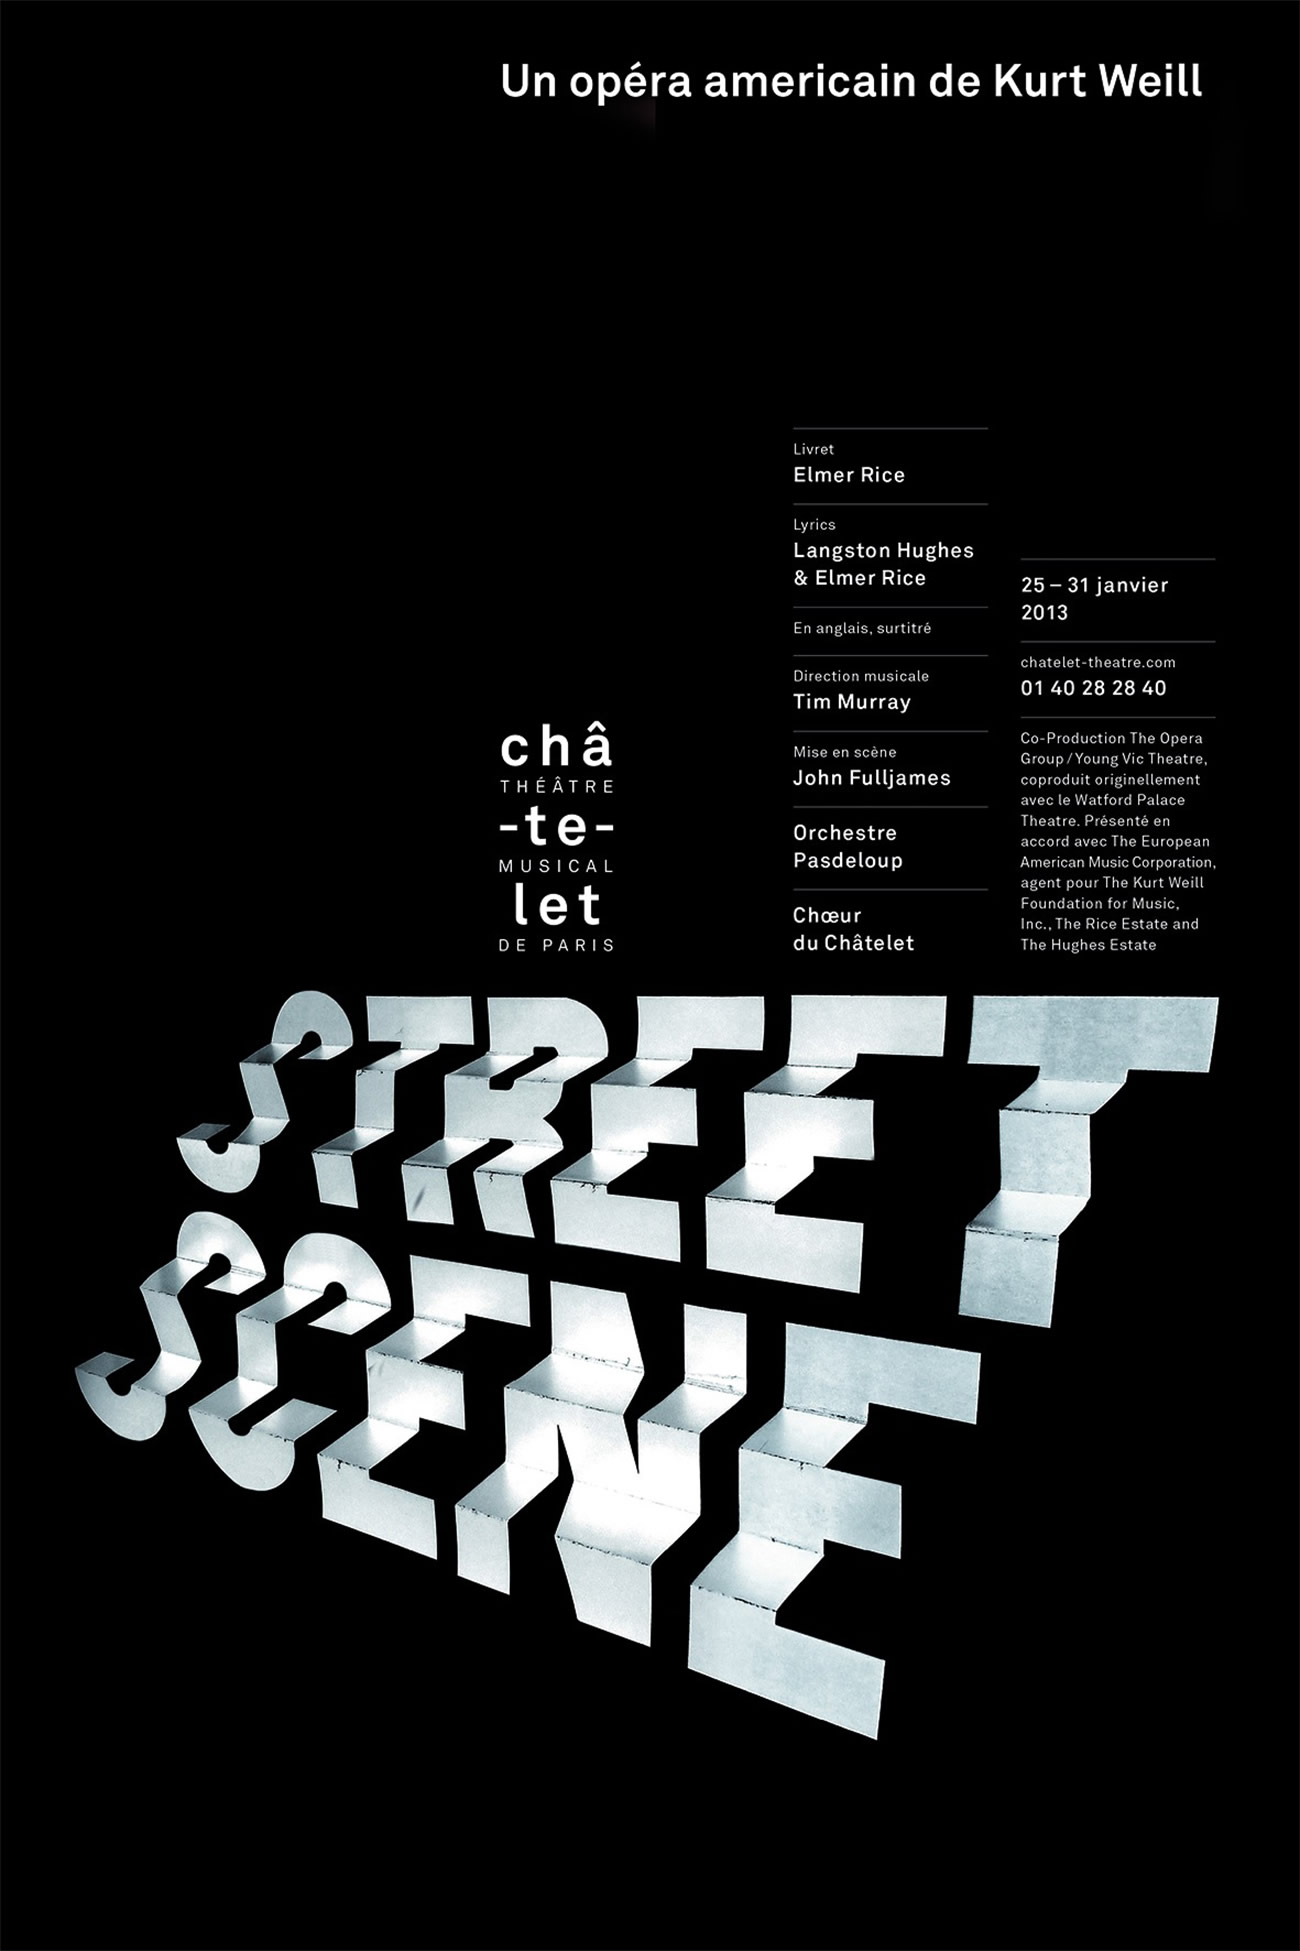 street scene poster with stairs by Philippe Apeloig